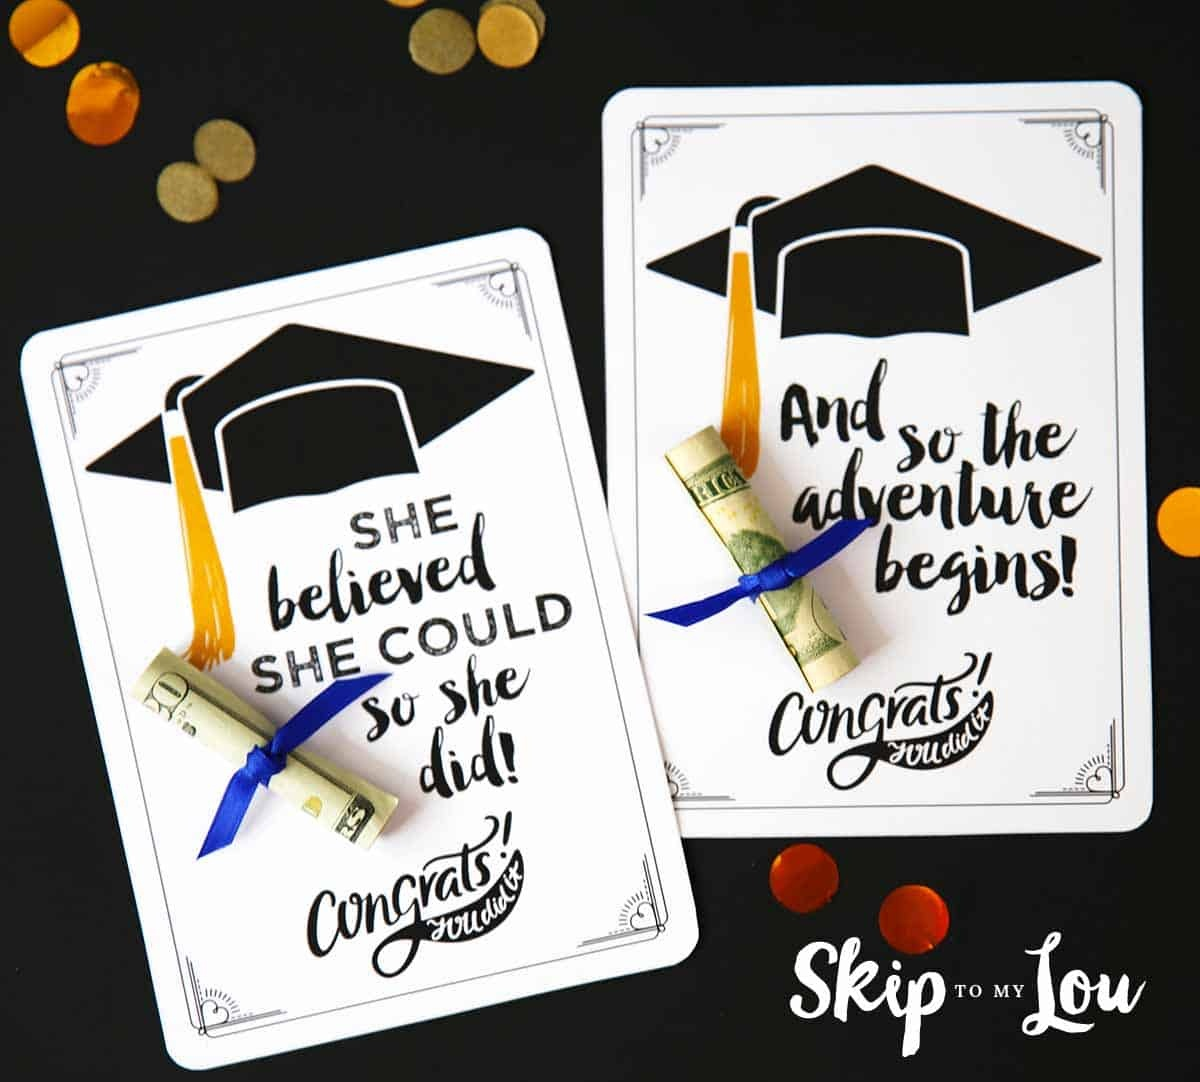 Free Graduation Cards With Positive Quotes And Cash! - Free Printable Graduation Quotes